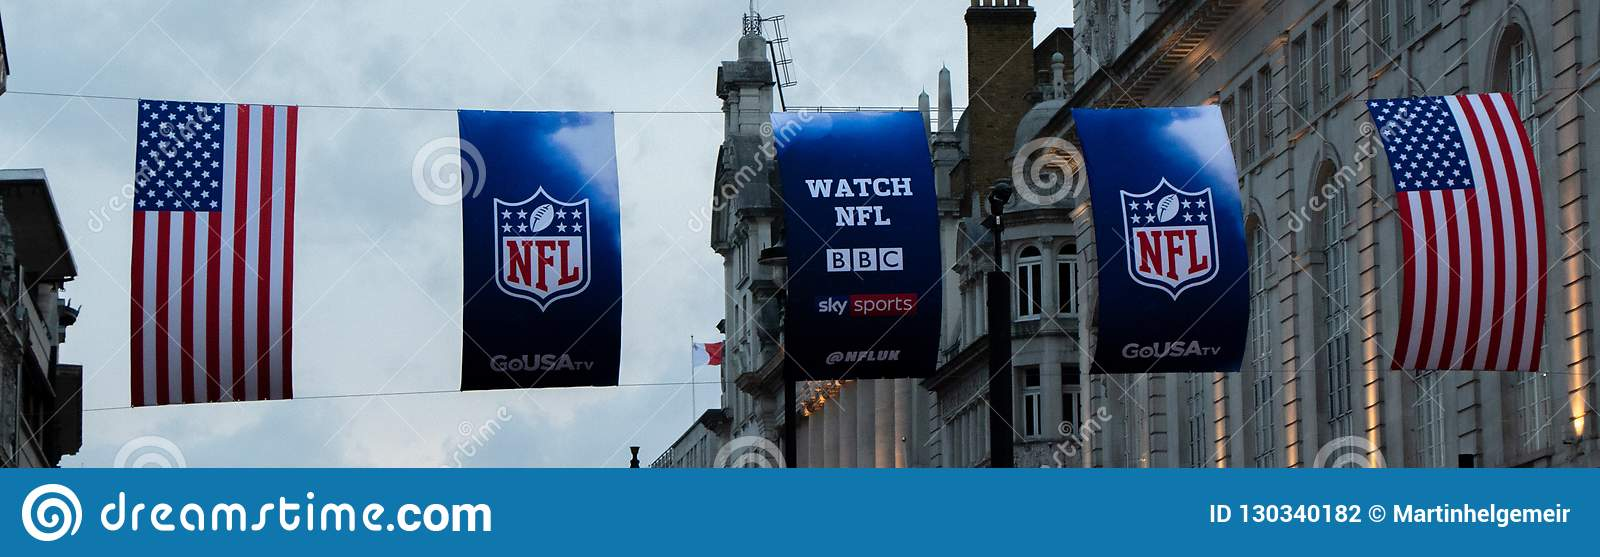 USA- und NFL-Flagge in London bei Piccadilly Circus